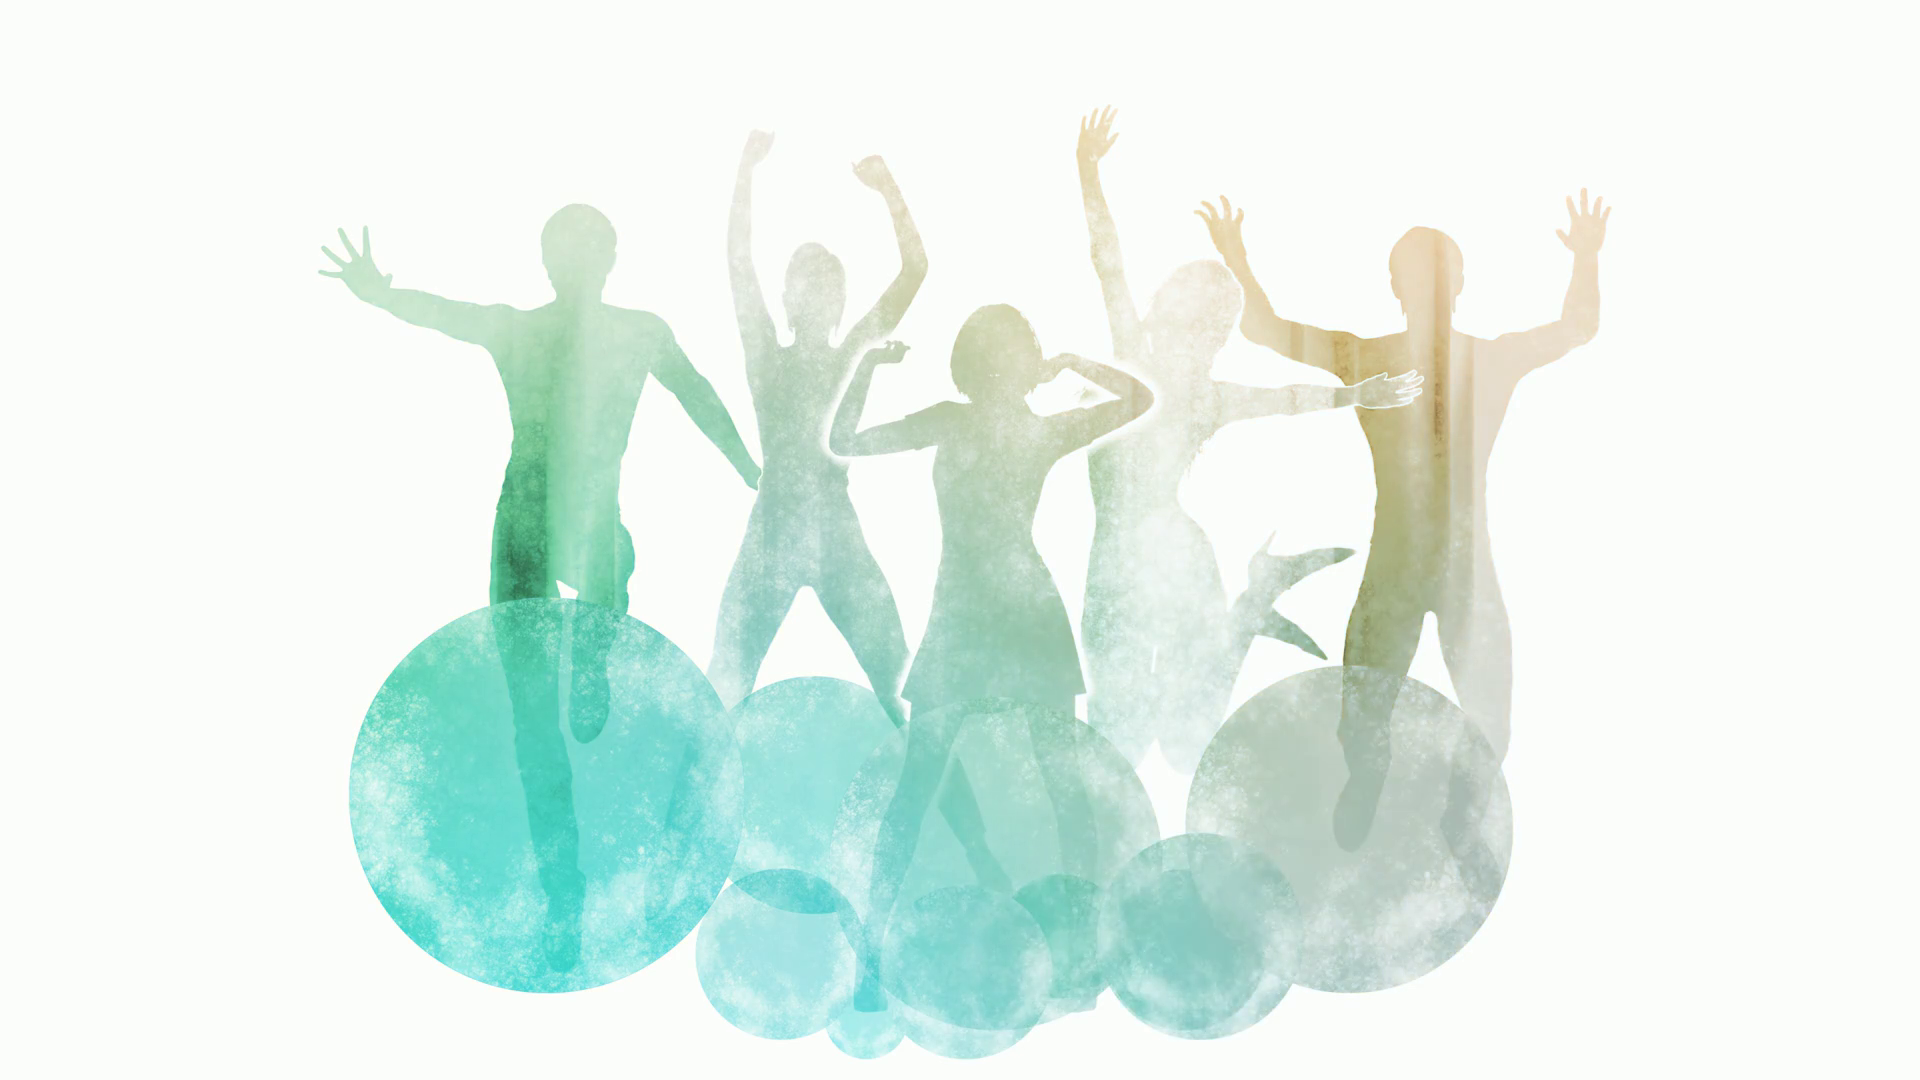 1920x1080 Group Of Friends Jumping For Joy In Watercolor Paint Motion